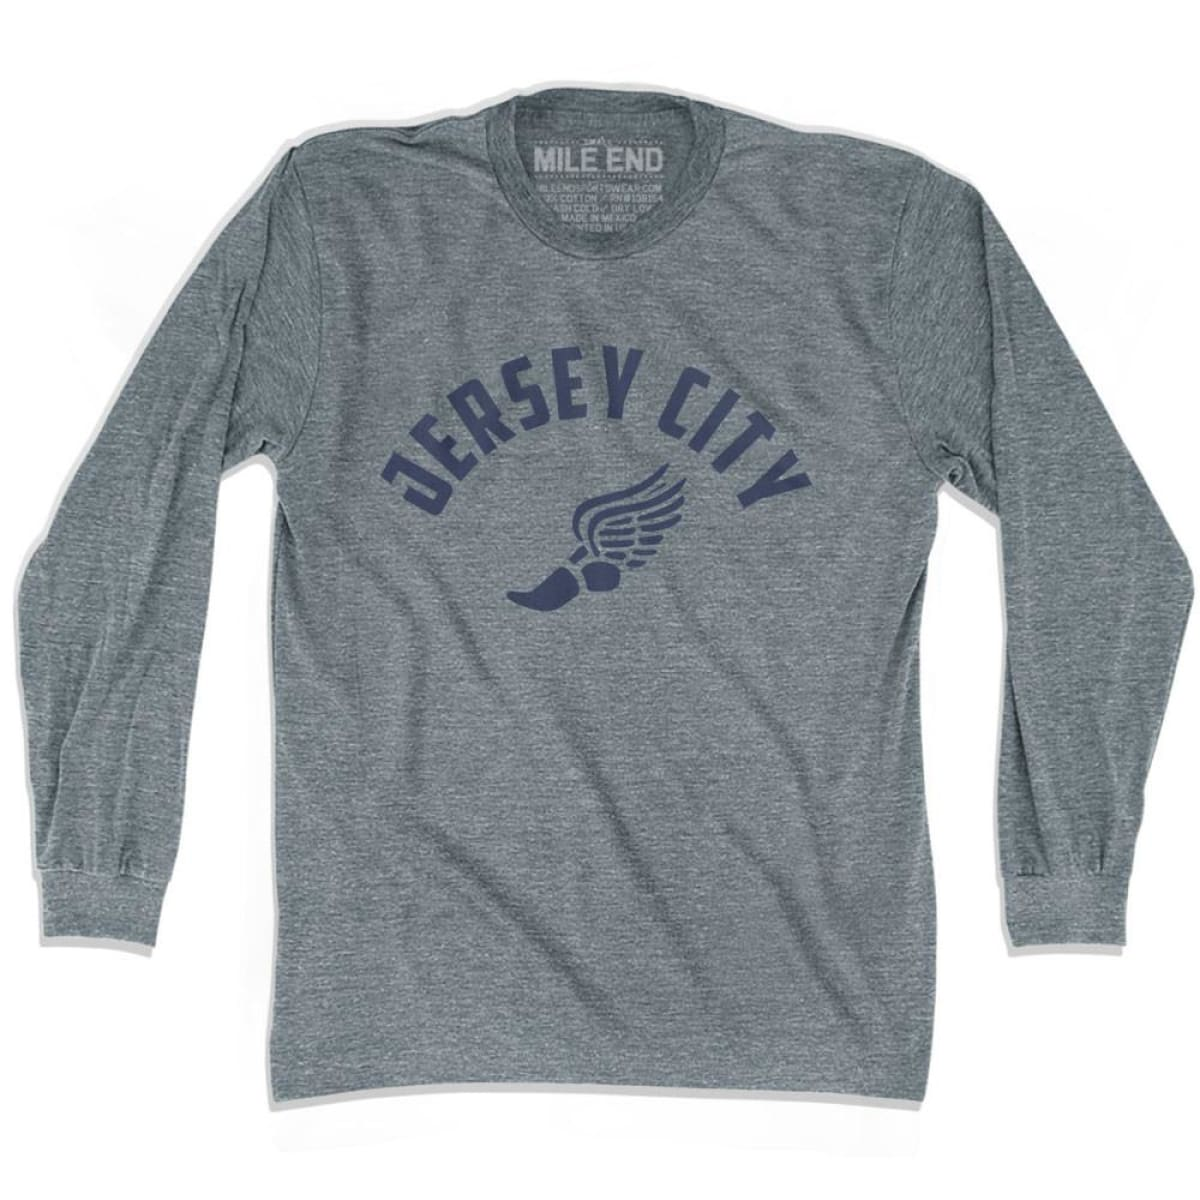 Jersey City Track Long Sleeve T-shirt - Athletic Grey / Adult X-Small - Mile End Track